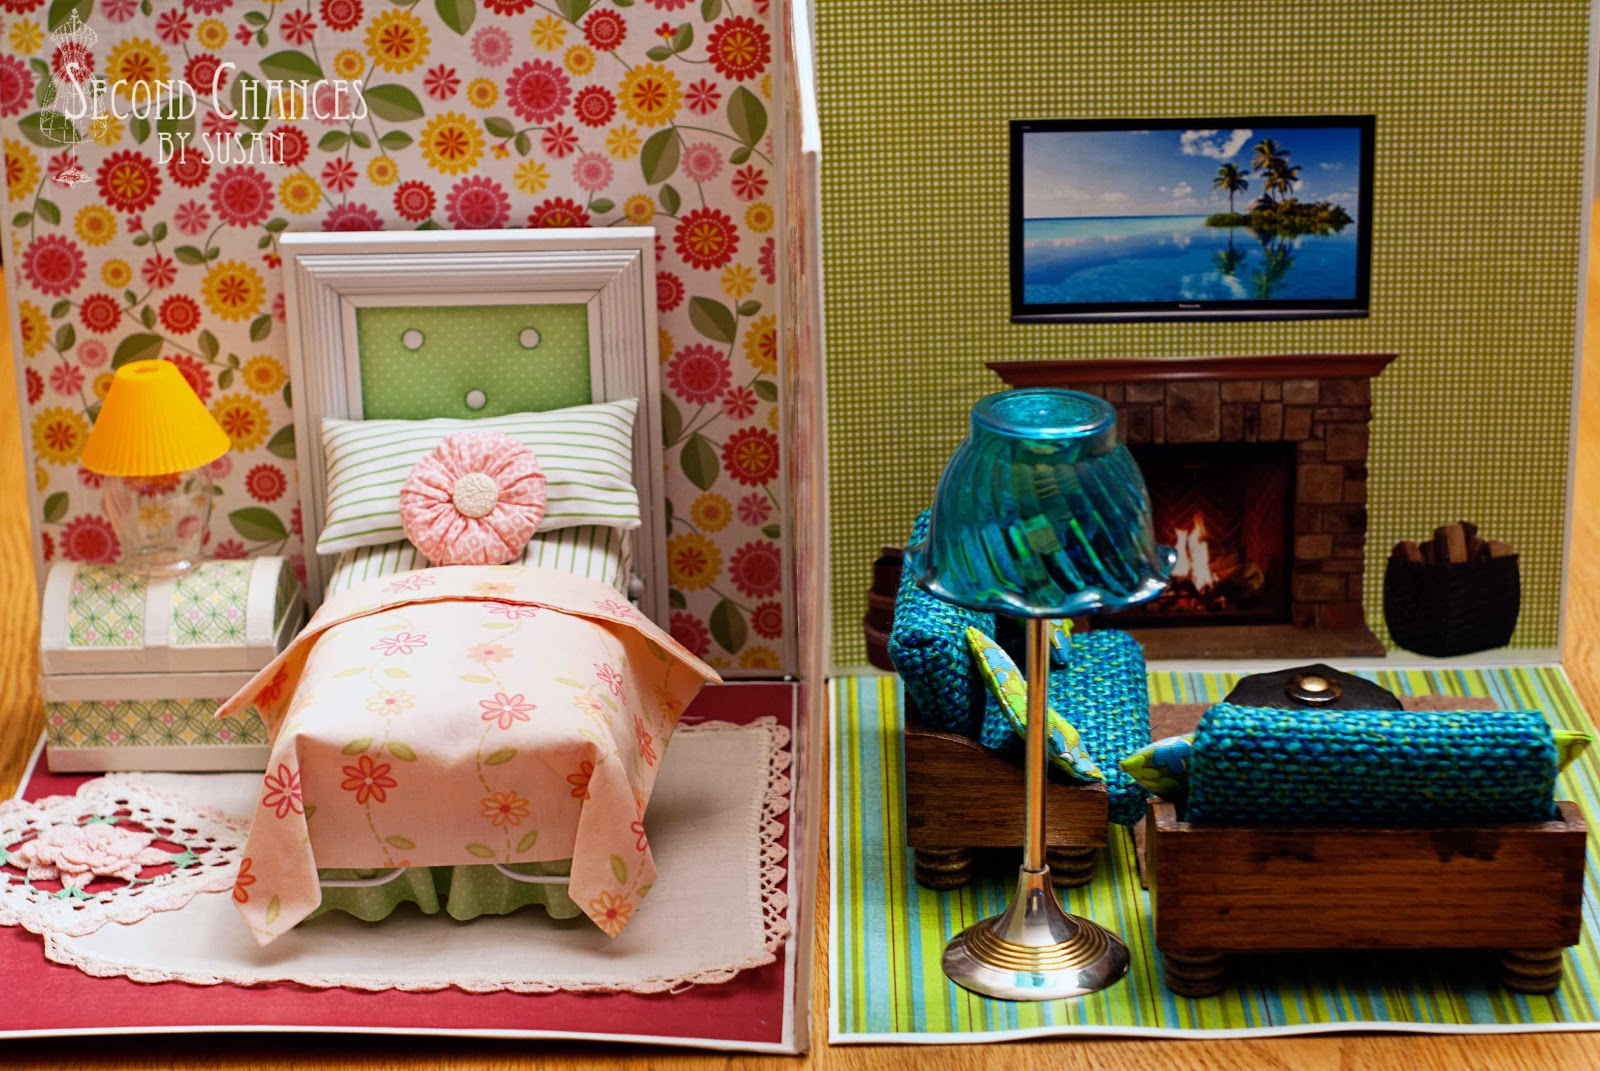 Second chances by susan collapsible dollhouse for Duct tape bedroom ideas